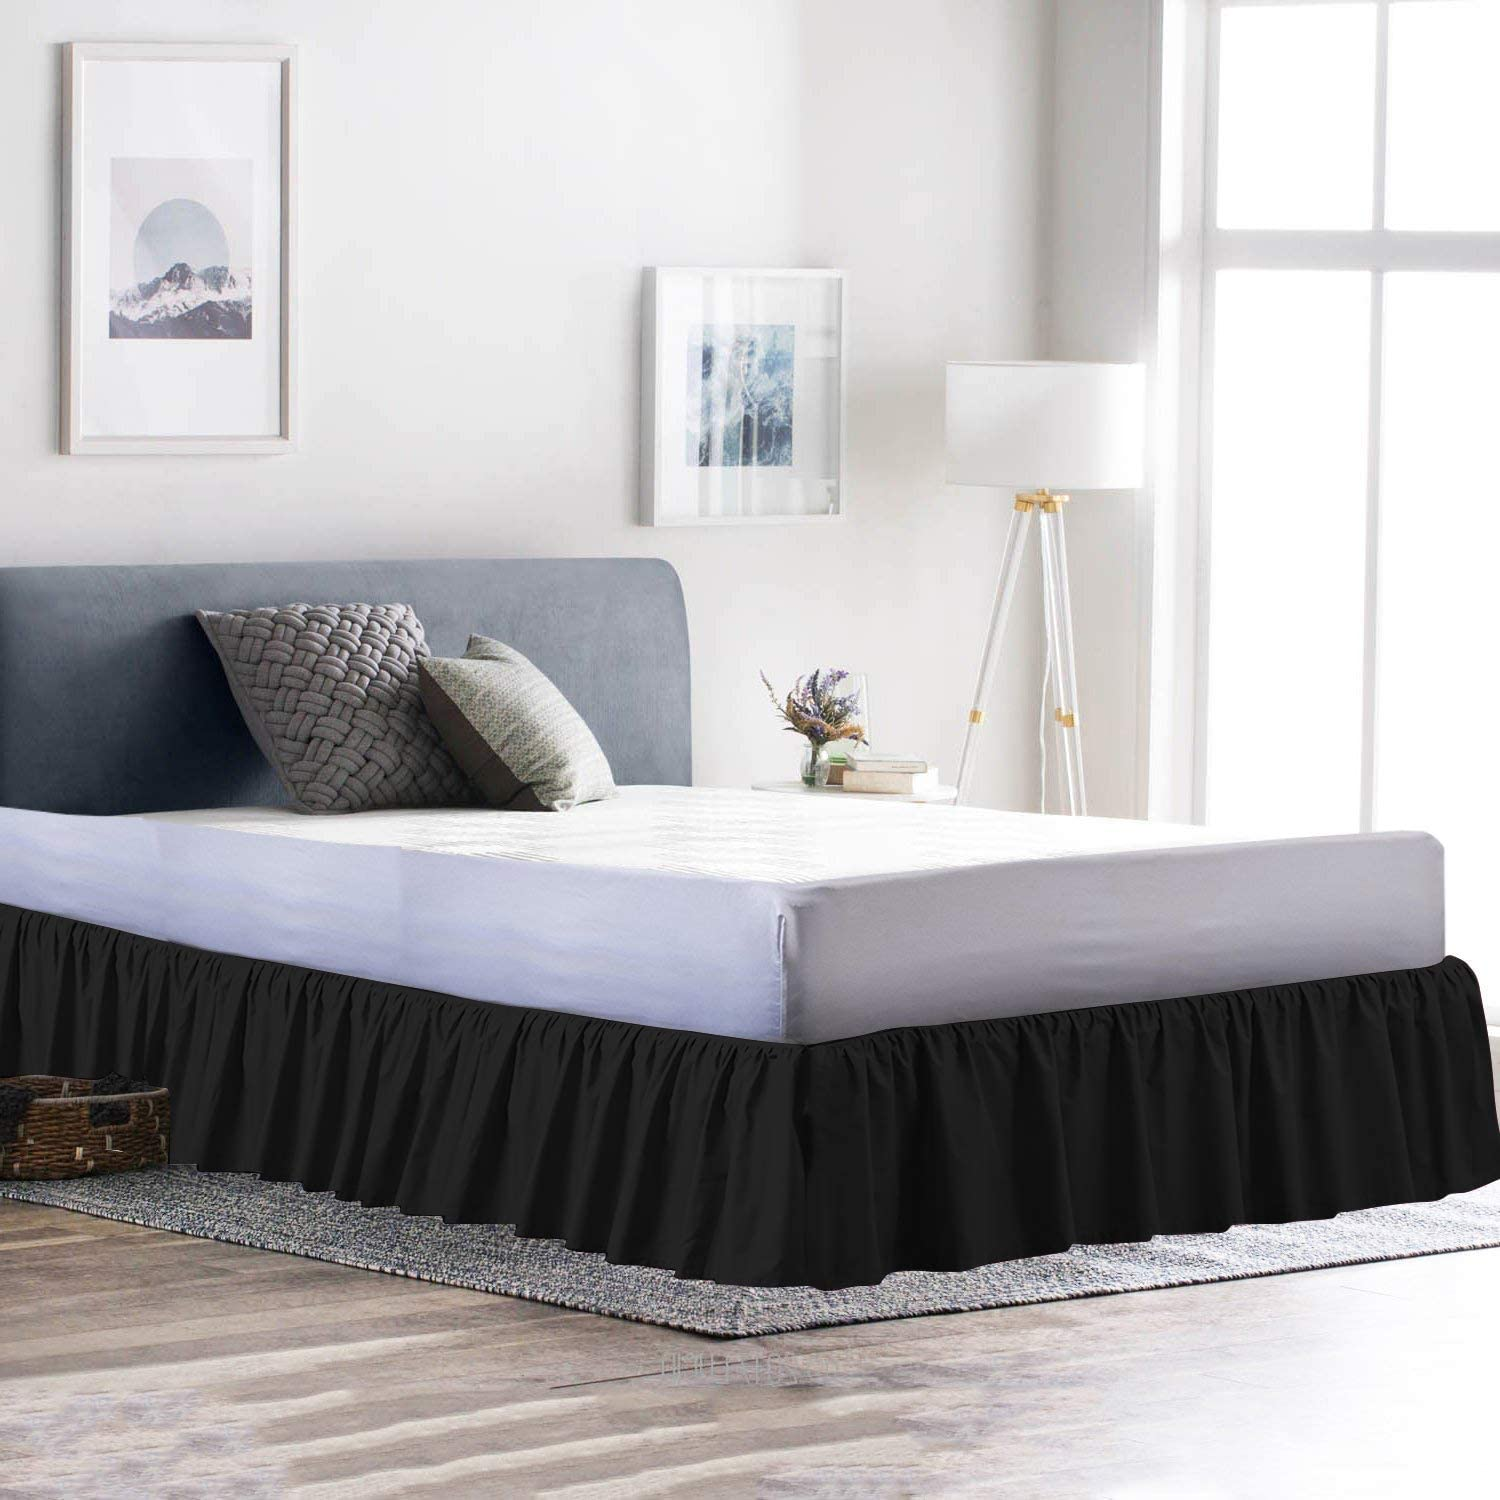 Unique' 100% Egyptian Cotton Limited time sale with Ruffle Count Max 90% OFF Thread 800 BedSki